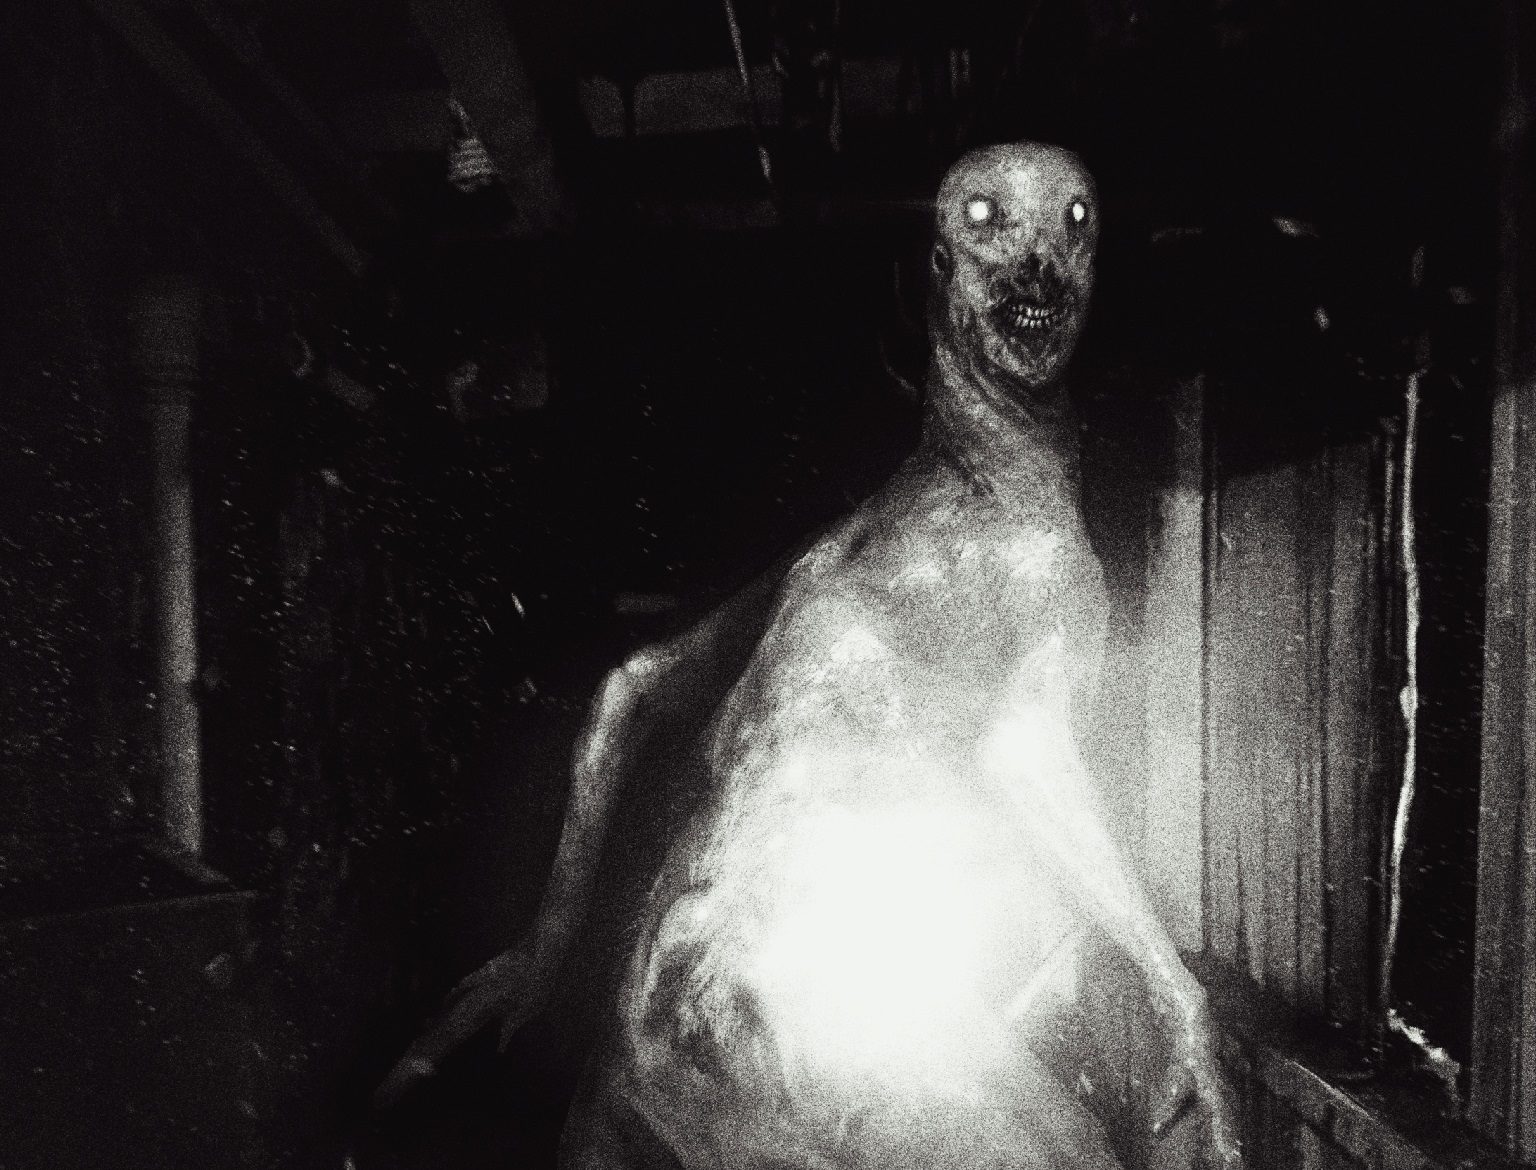 SCP-3199